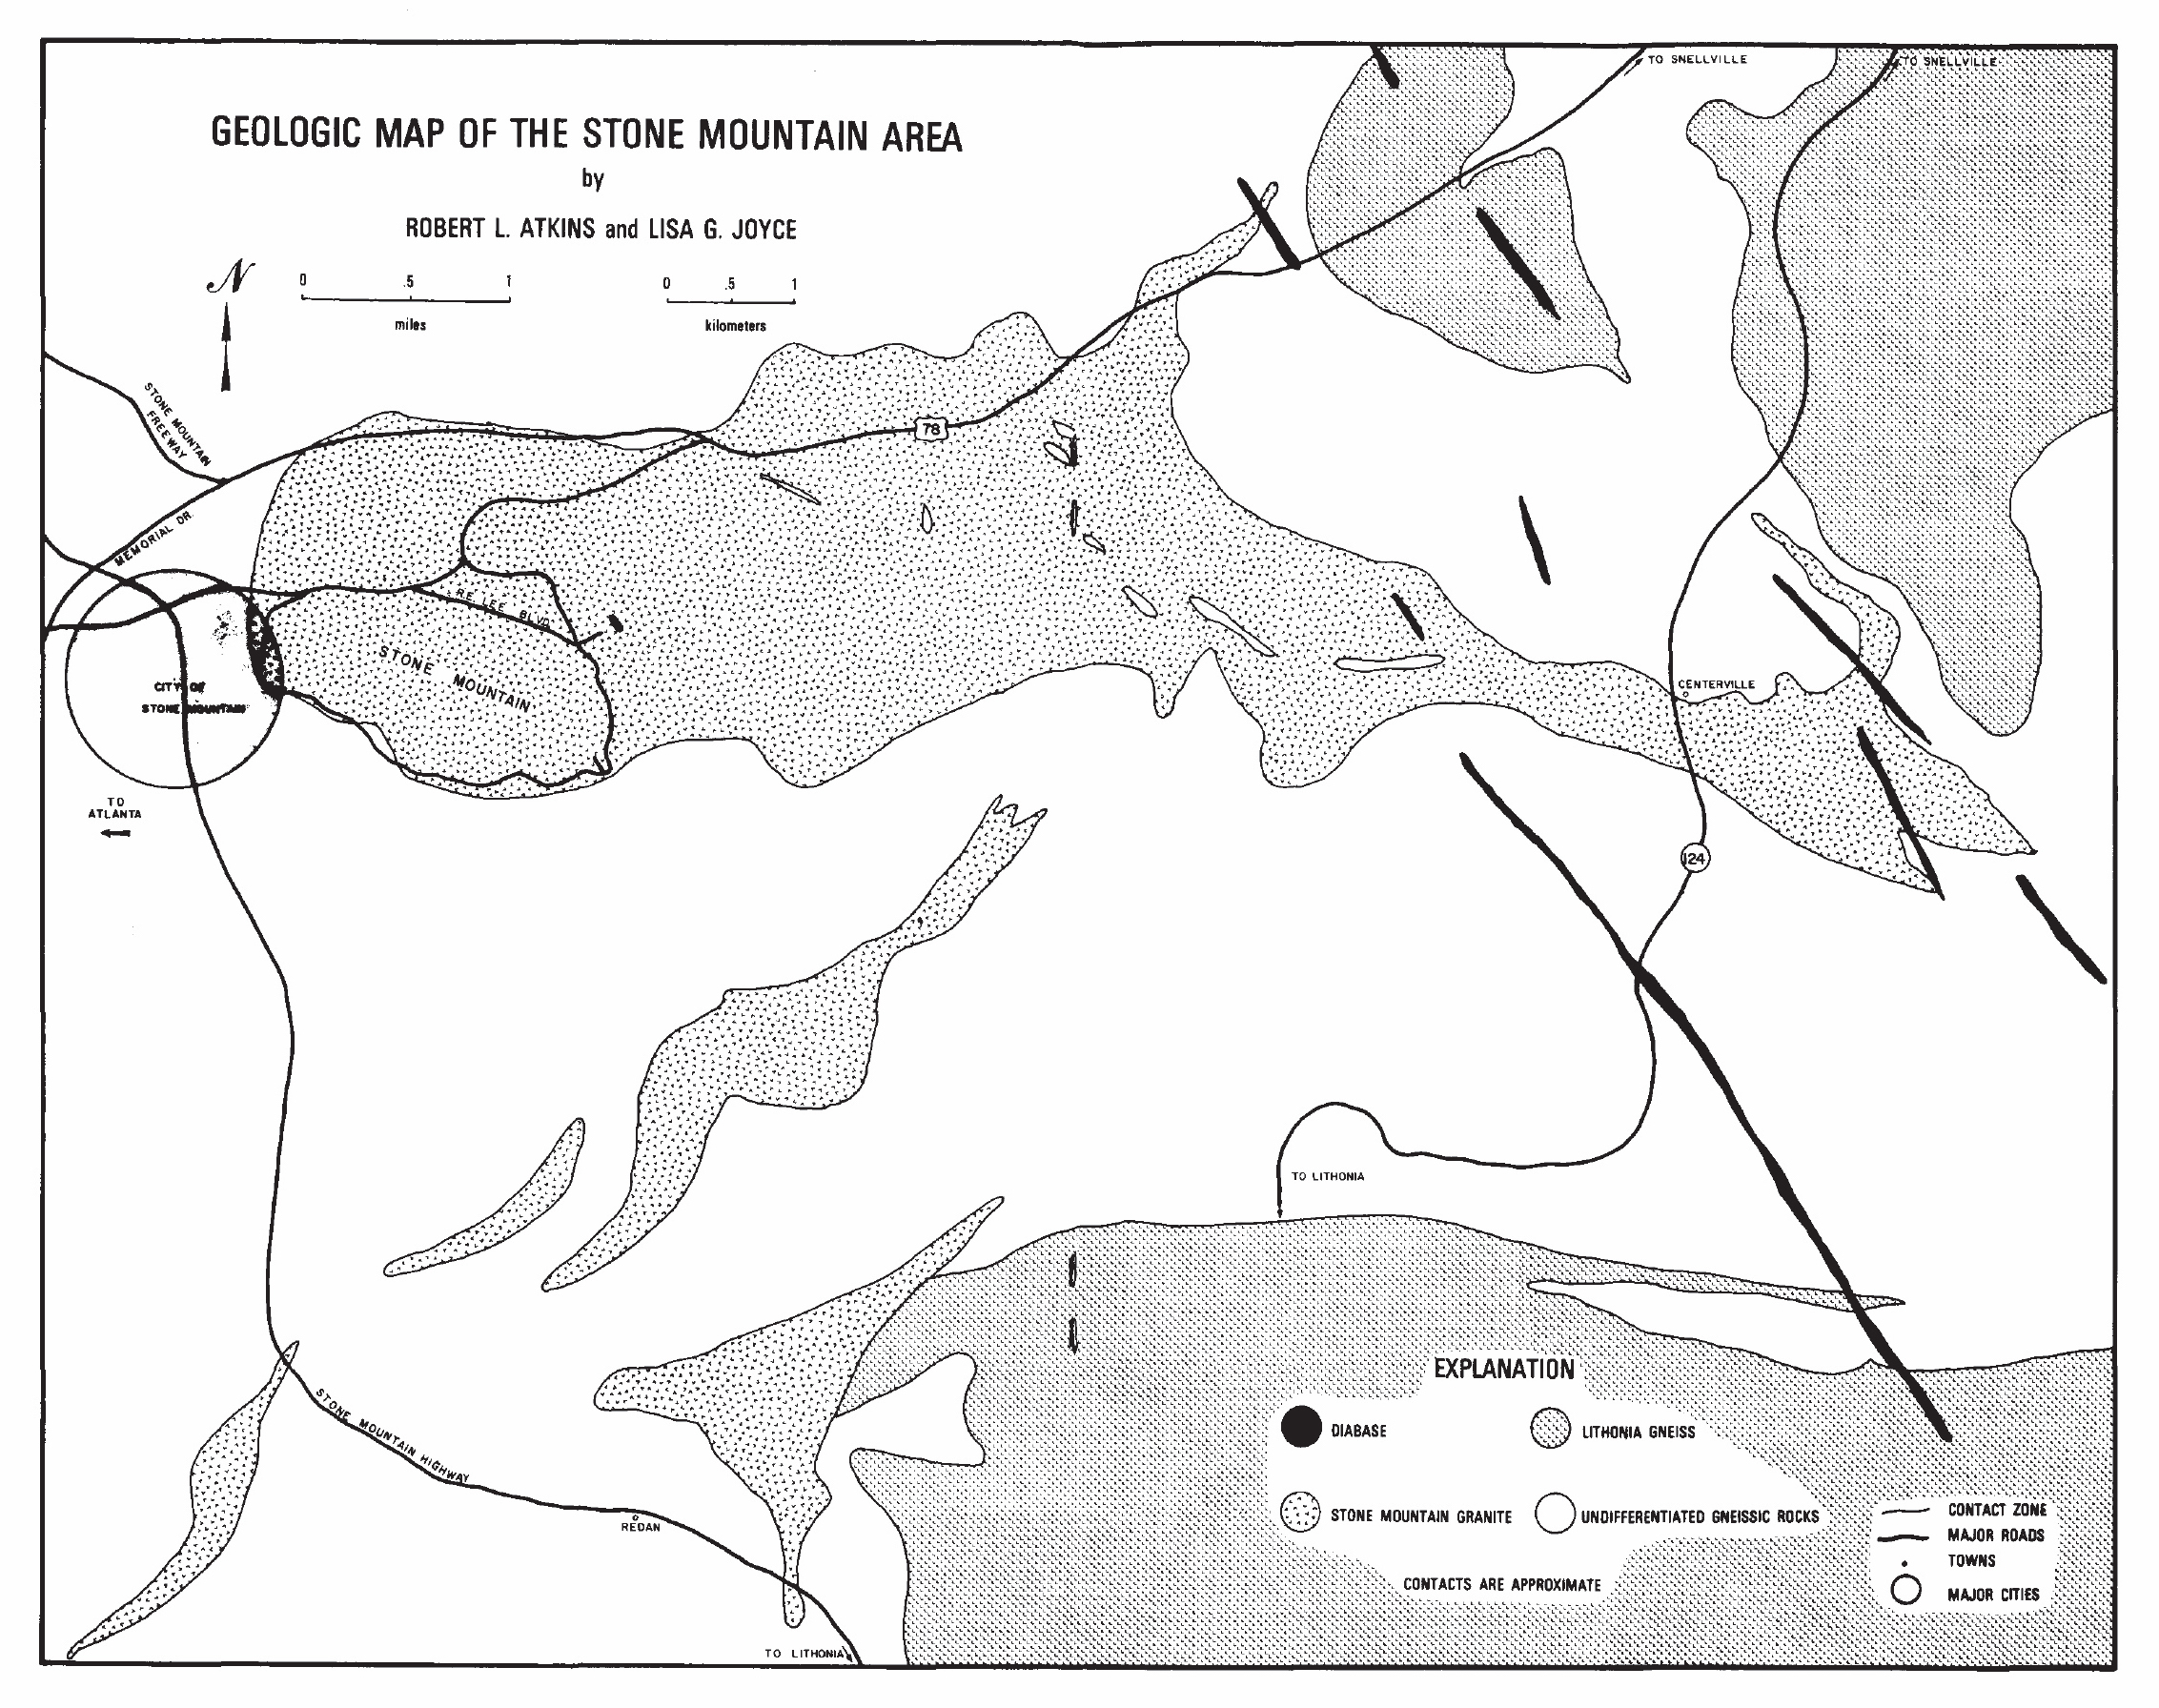 Map created by Robert L. Atkins and Lisa G. Joyce.  Published in  Geologic Guide to Stone Mountain Park , 1980.